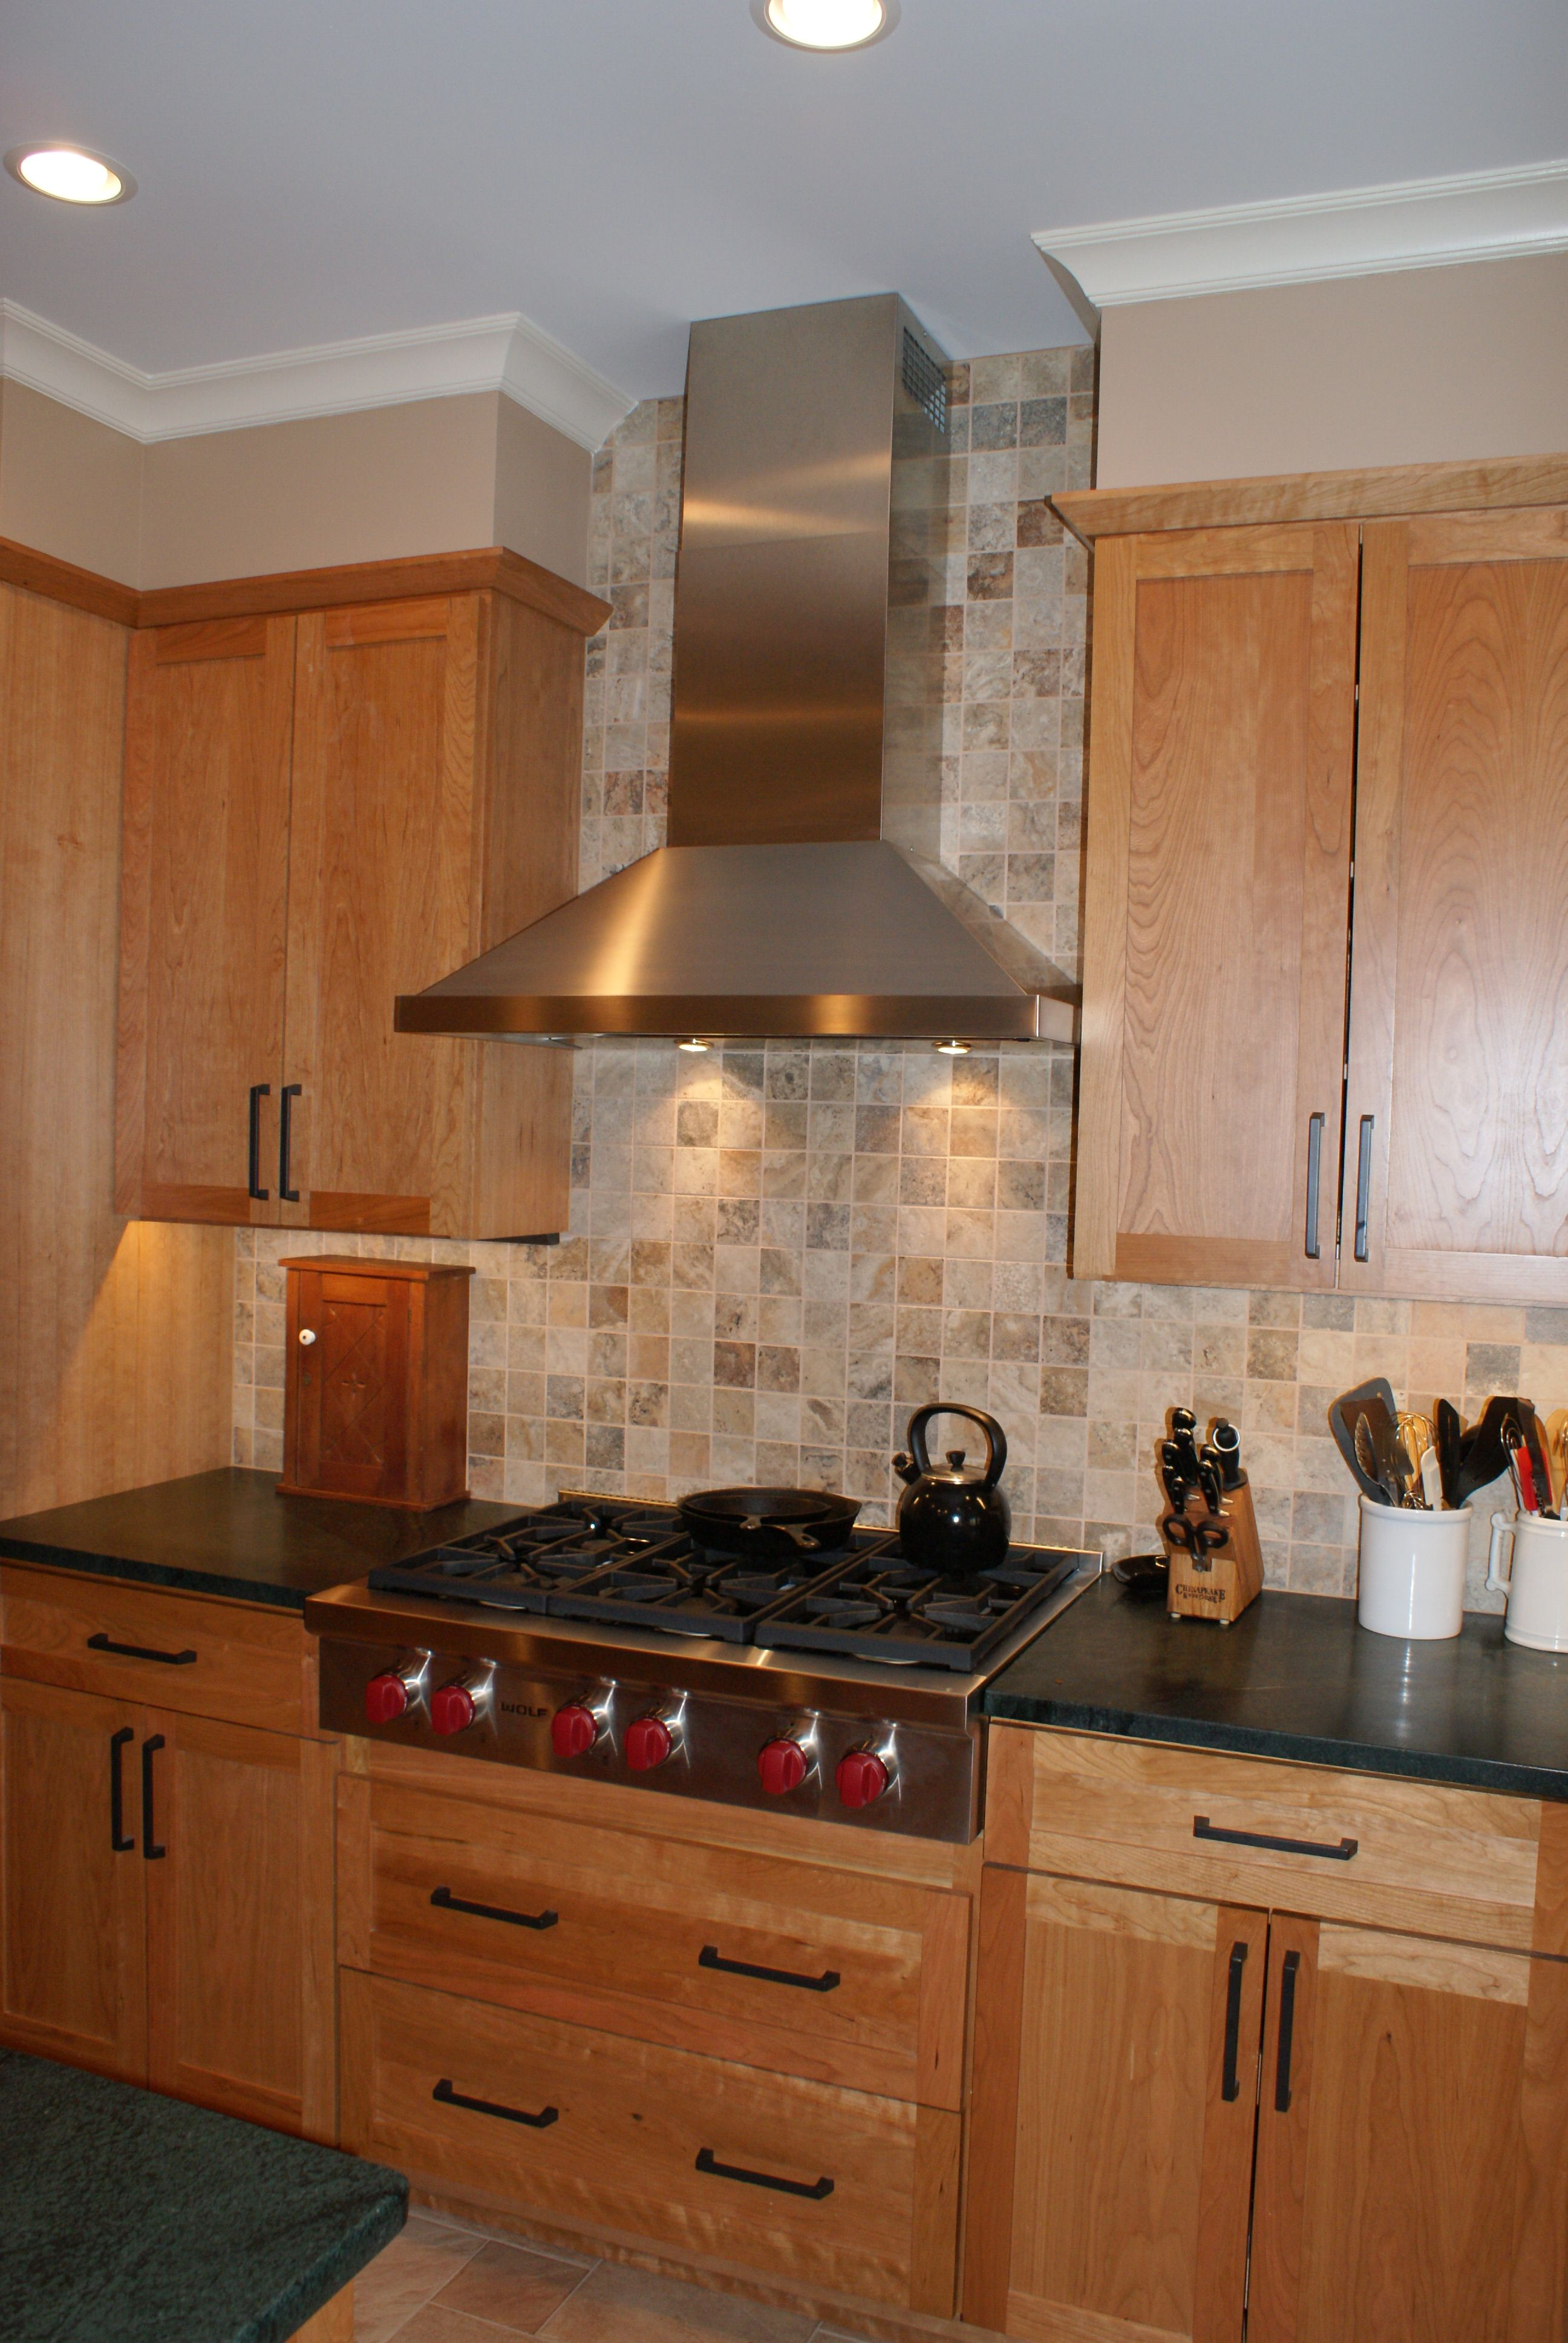 Kitchen Ceiling Tiles Small Table And Chairs Backsplash Tile To Behind Range Hood Kitchens